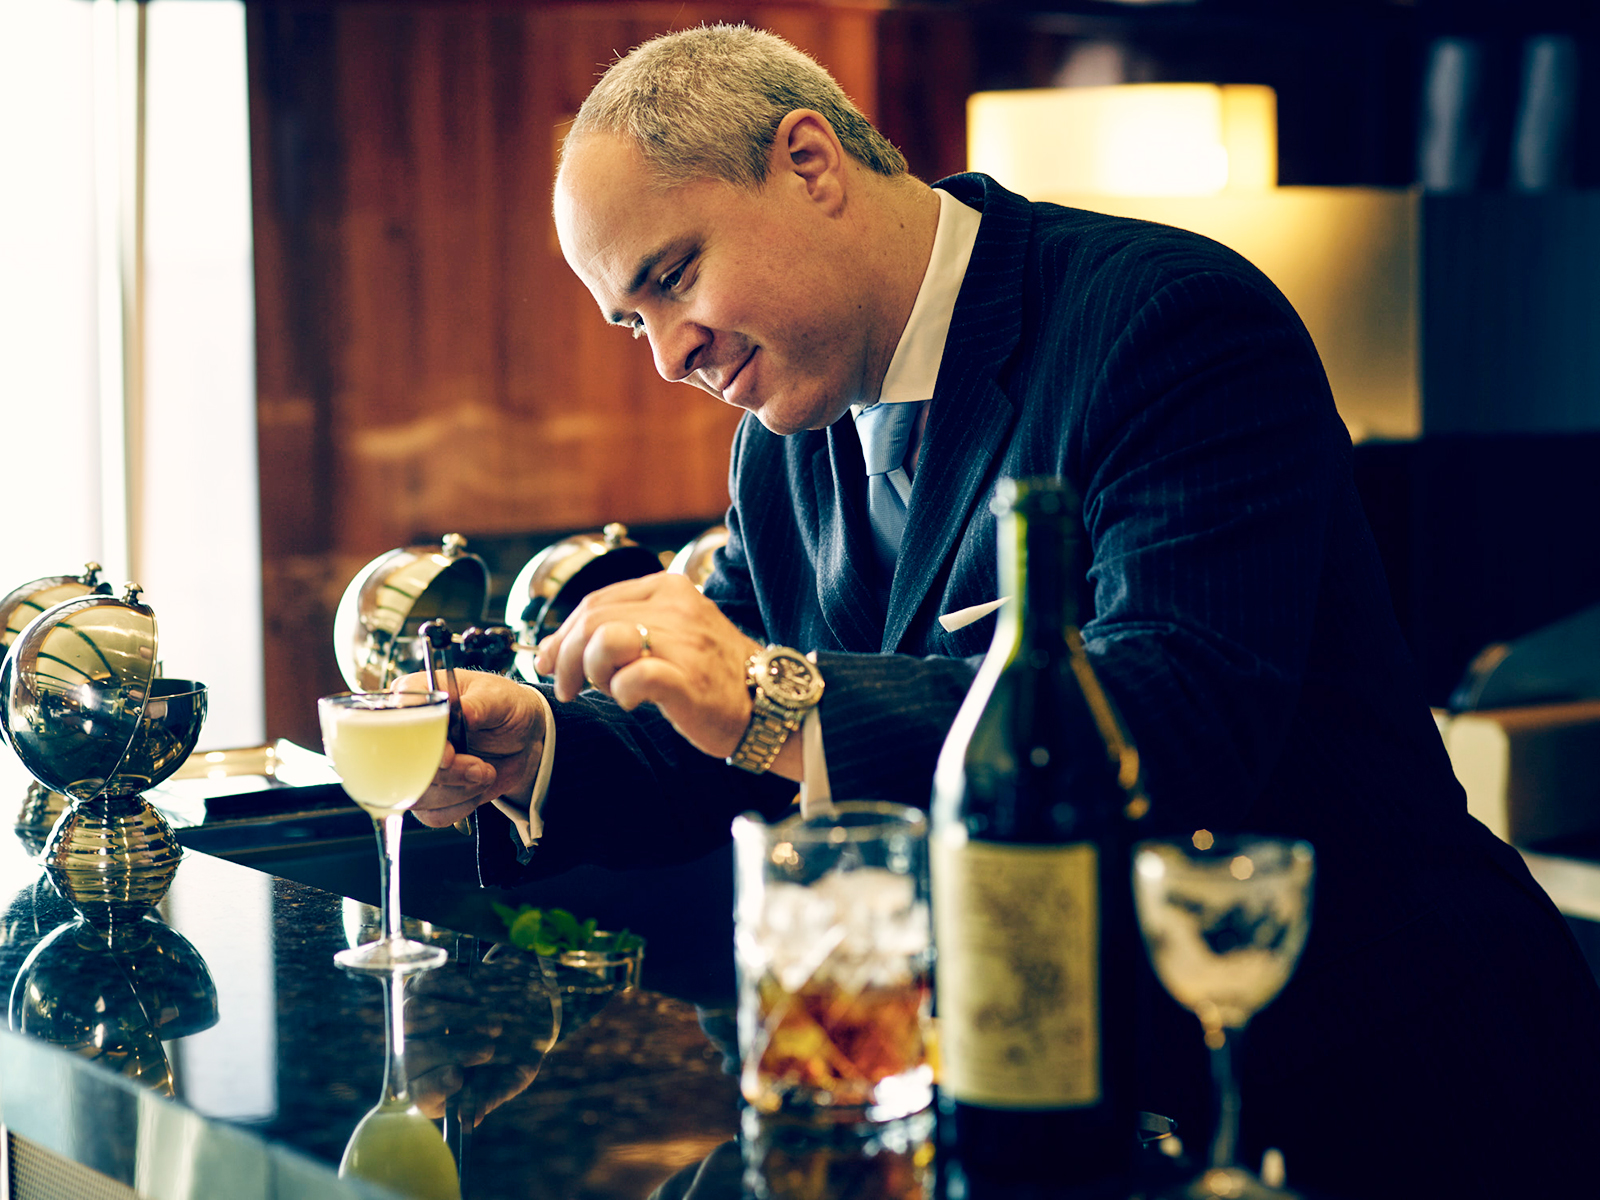 cocktail maker new trends for next year